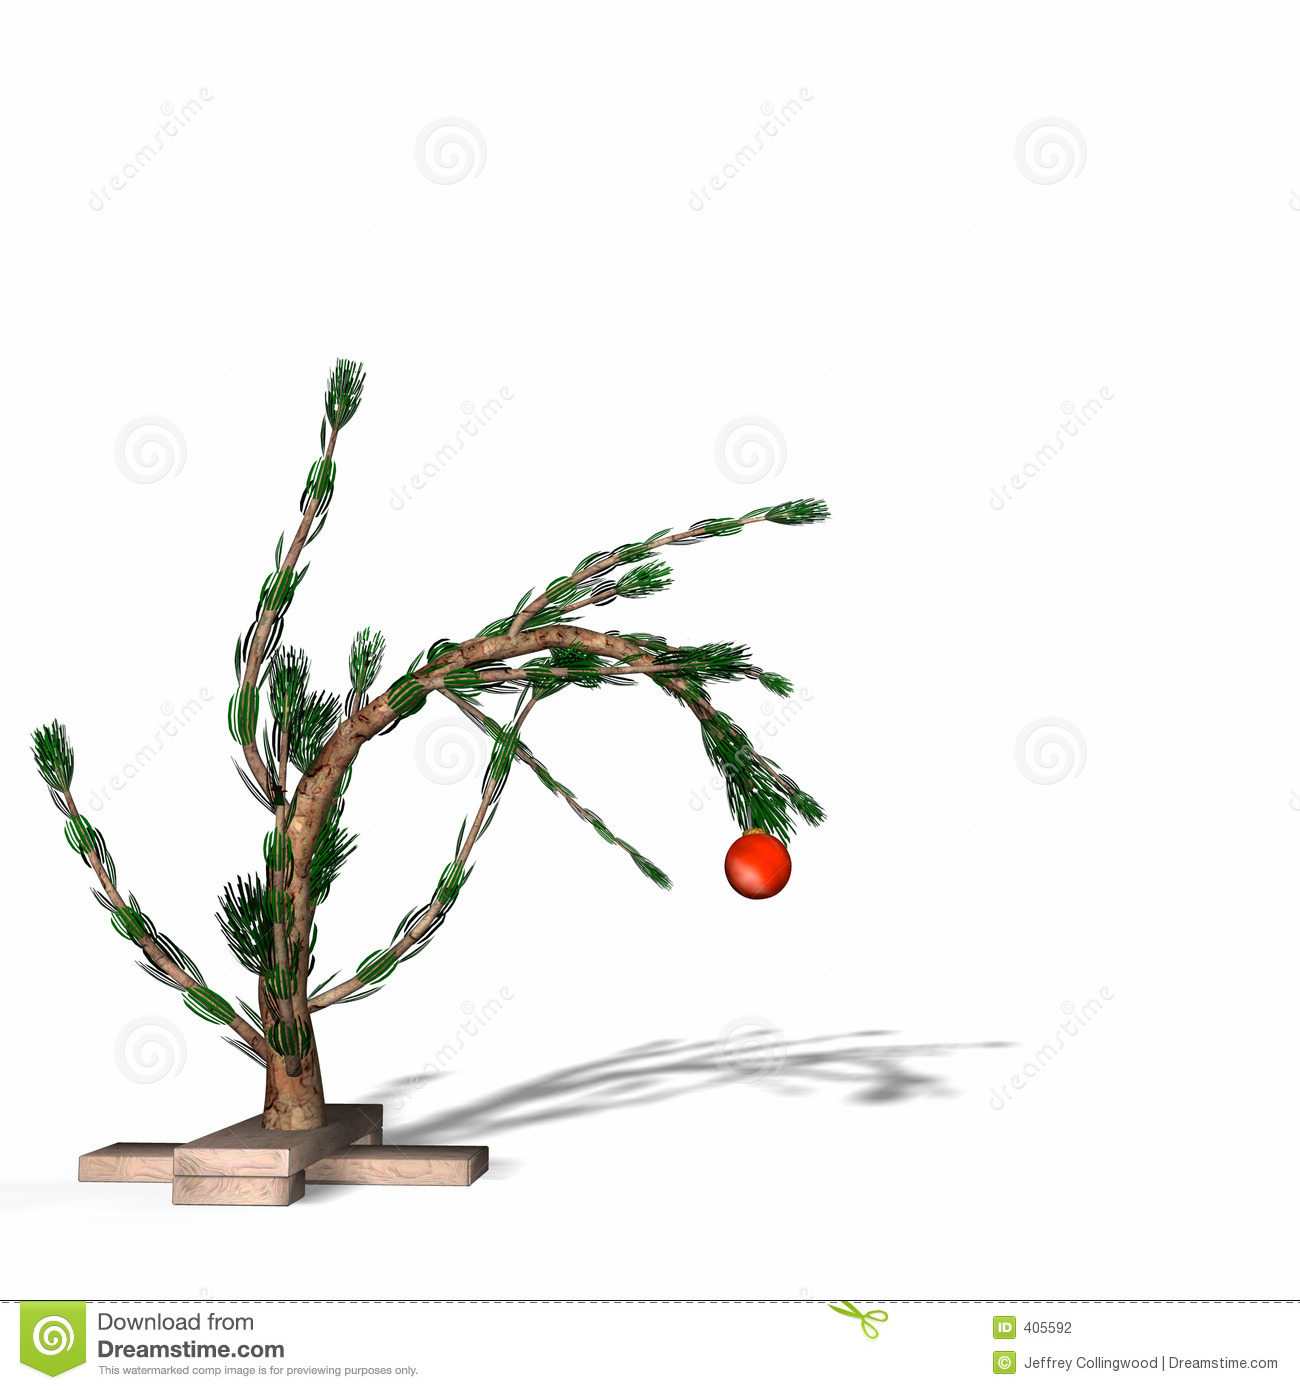 Charlie Brown Style Christmas Tree Stock Illustration - Illustration ...